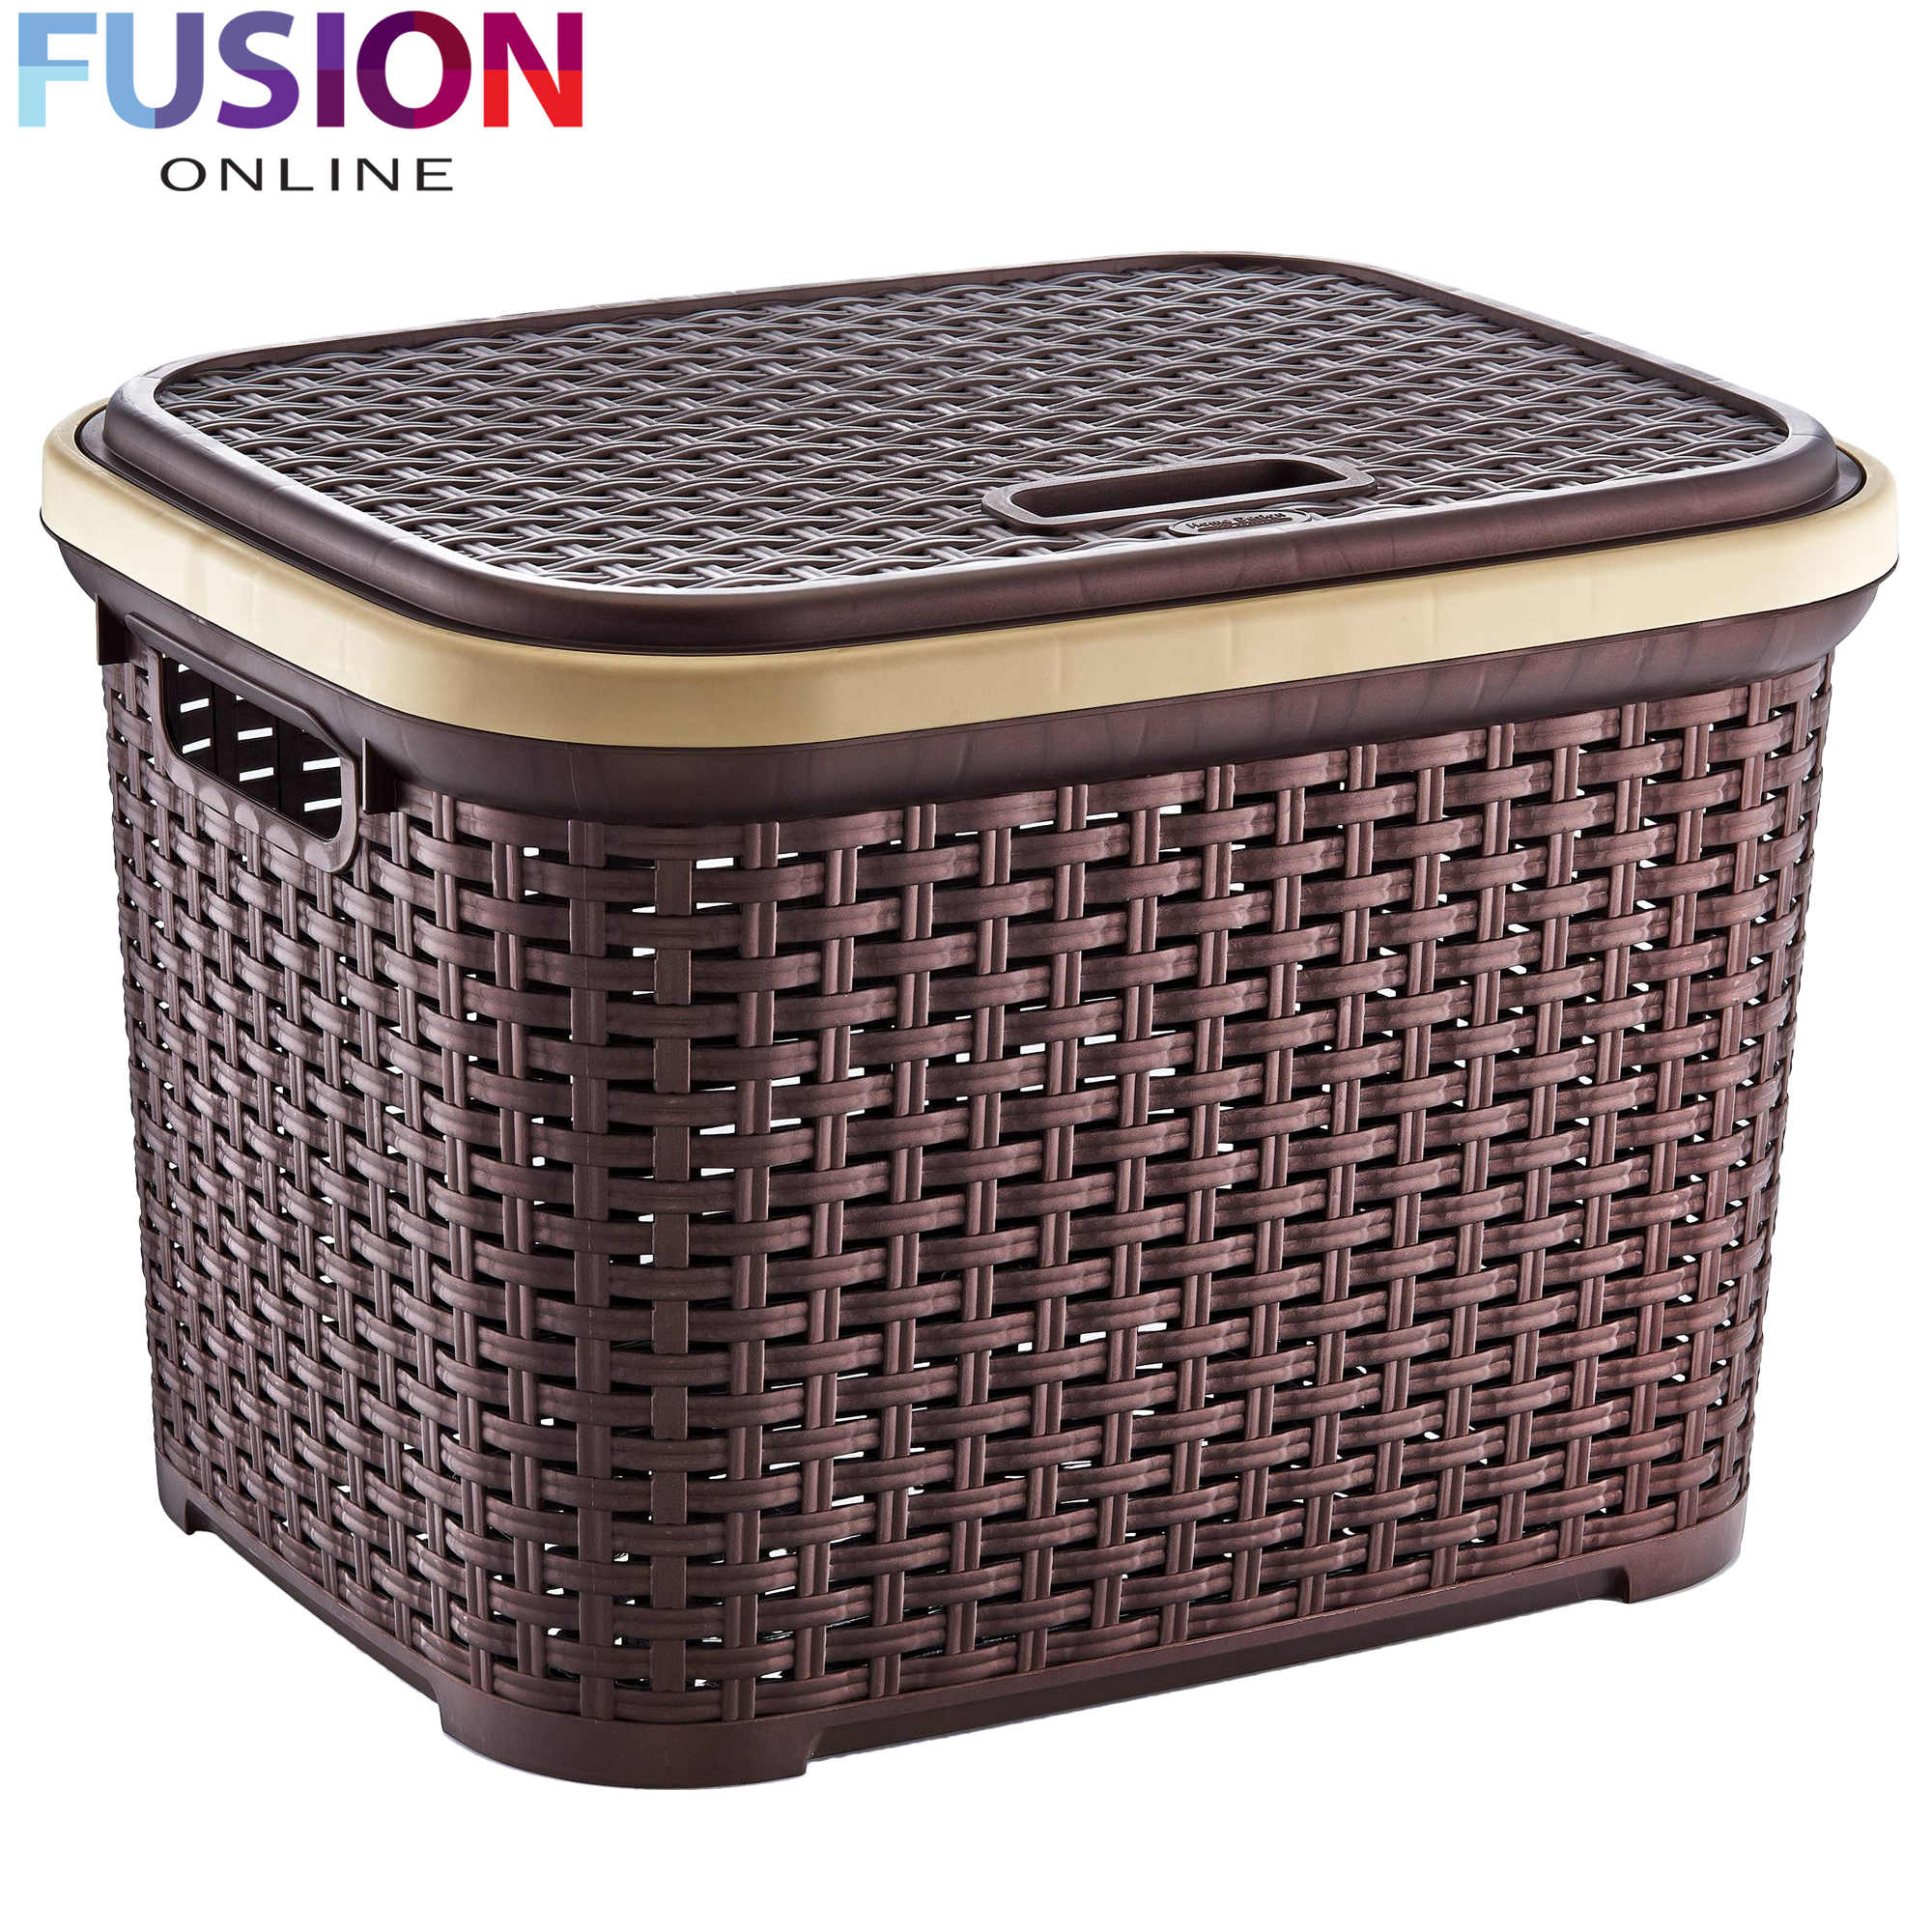 Medium laundry basket washing clothes storage hamper plastic basket rattan style ebay - Rattan laundry hamper ...